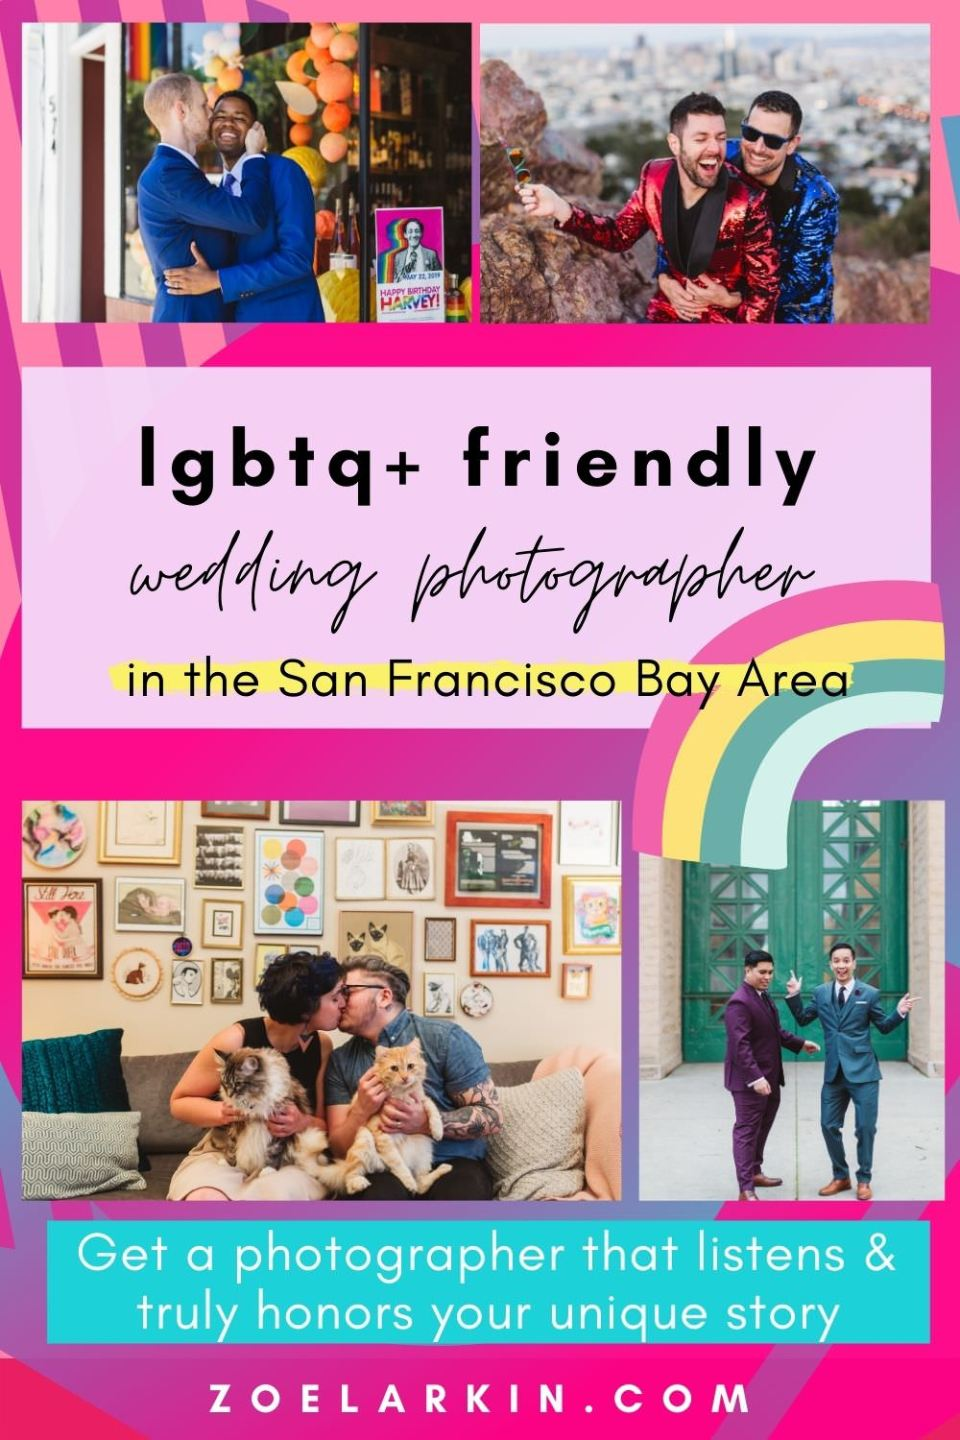 You're a San Francisco LGBTQ+ couple and you're getting married. Yay! Now you need a photographer for your engagement and wedding that is invested in understanding you as a unique couple and knows how to listen to LGBT couples.  So read on for my approach to photographing LGBTQ+ weddings in the Bay Area. From genderless posing to being open to listening, I understand that each LGBT couple is different. I seek to honor your story in its fullness. #bayareawedding #lgbtqwedding | zoelarkin.com